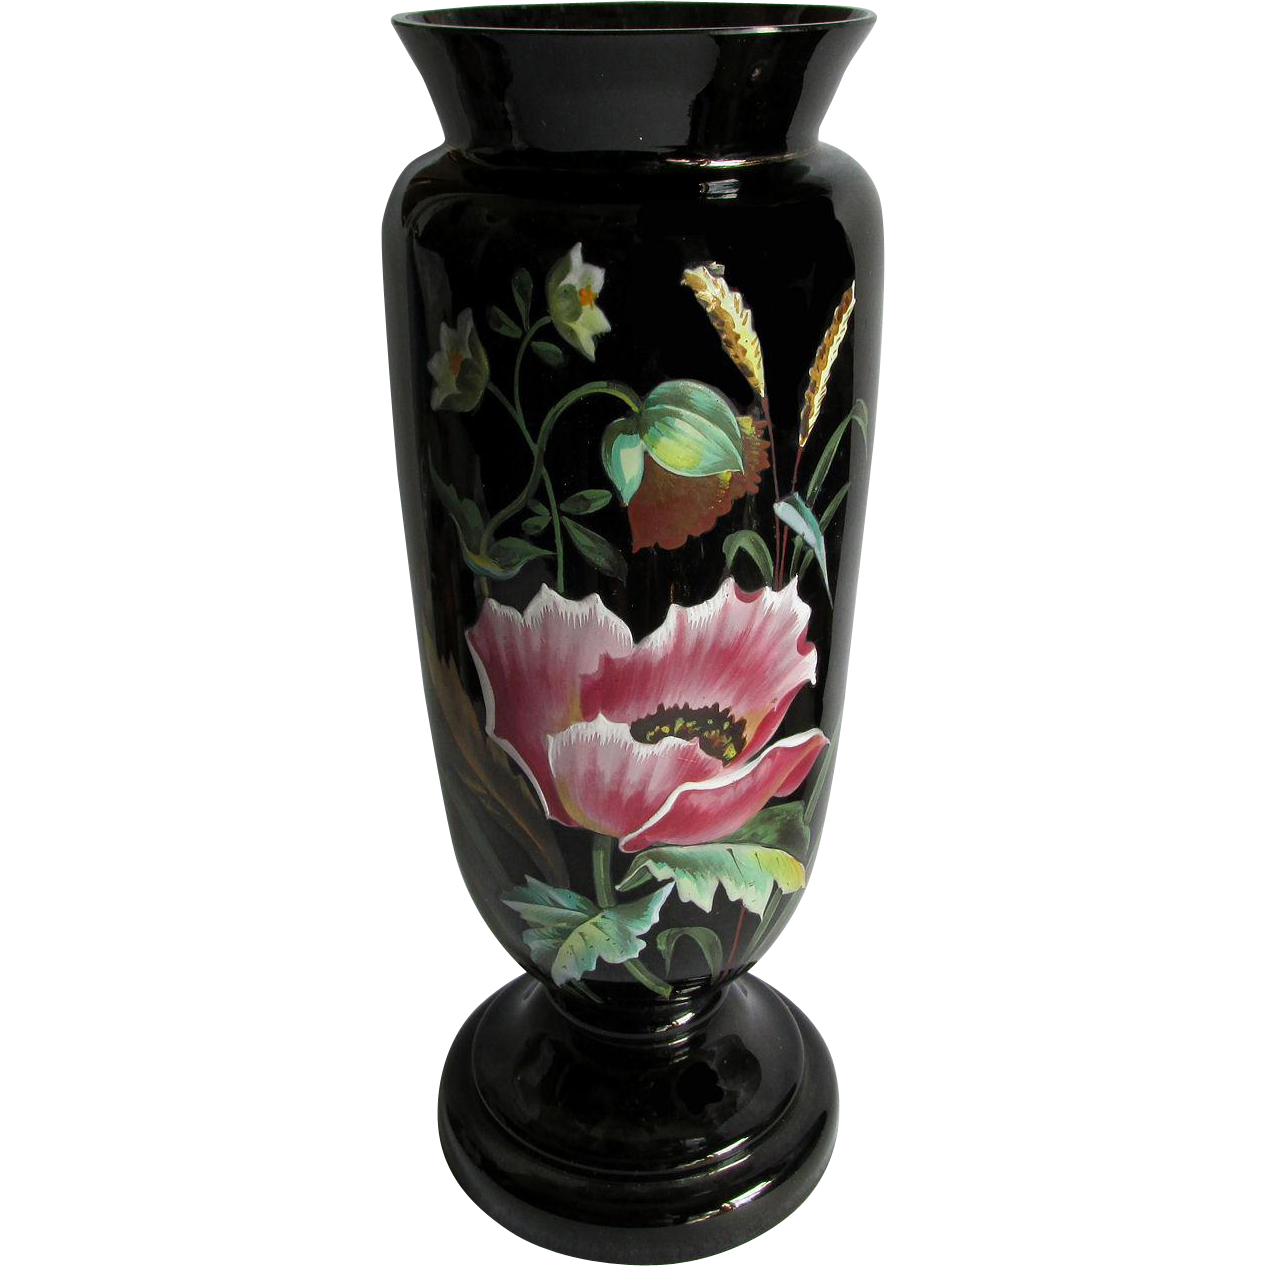 c1880s Black Amethyst Glass Vase with Enamel Poppy Flower